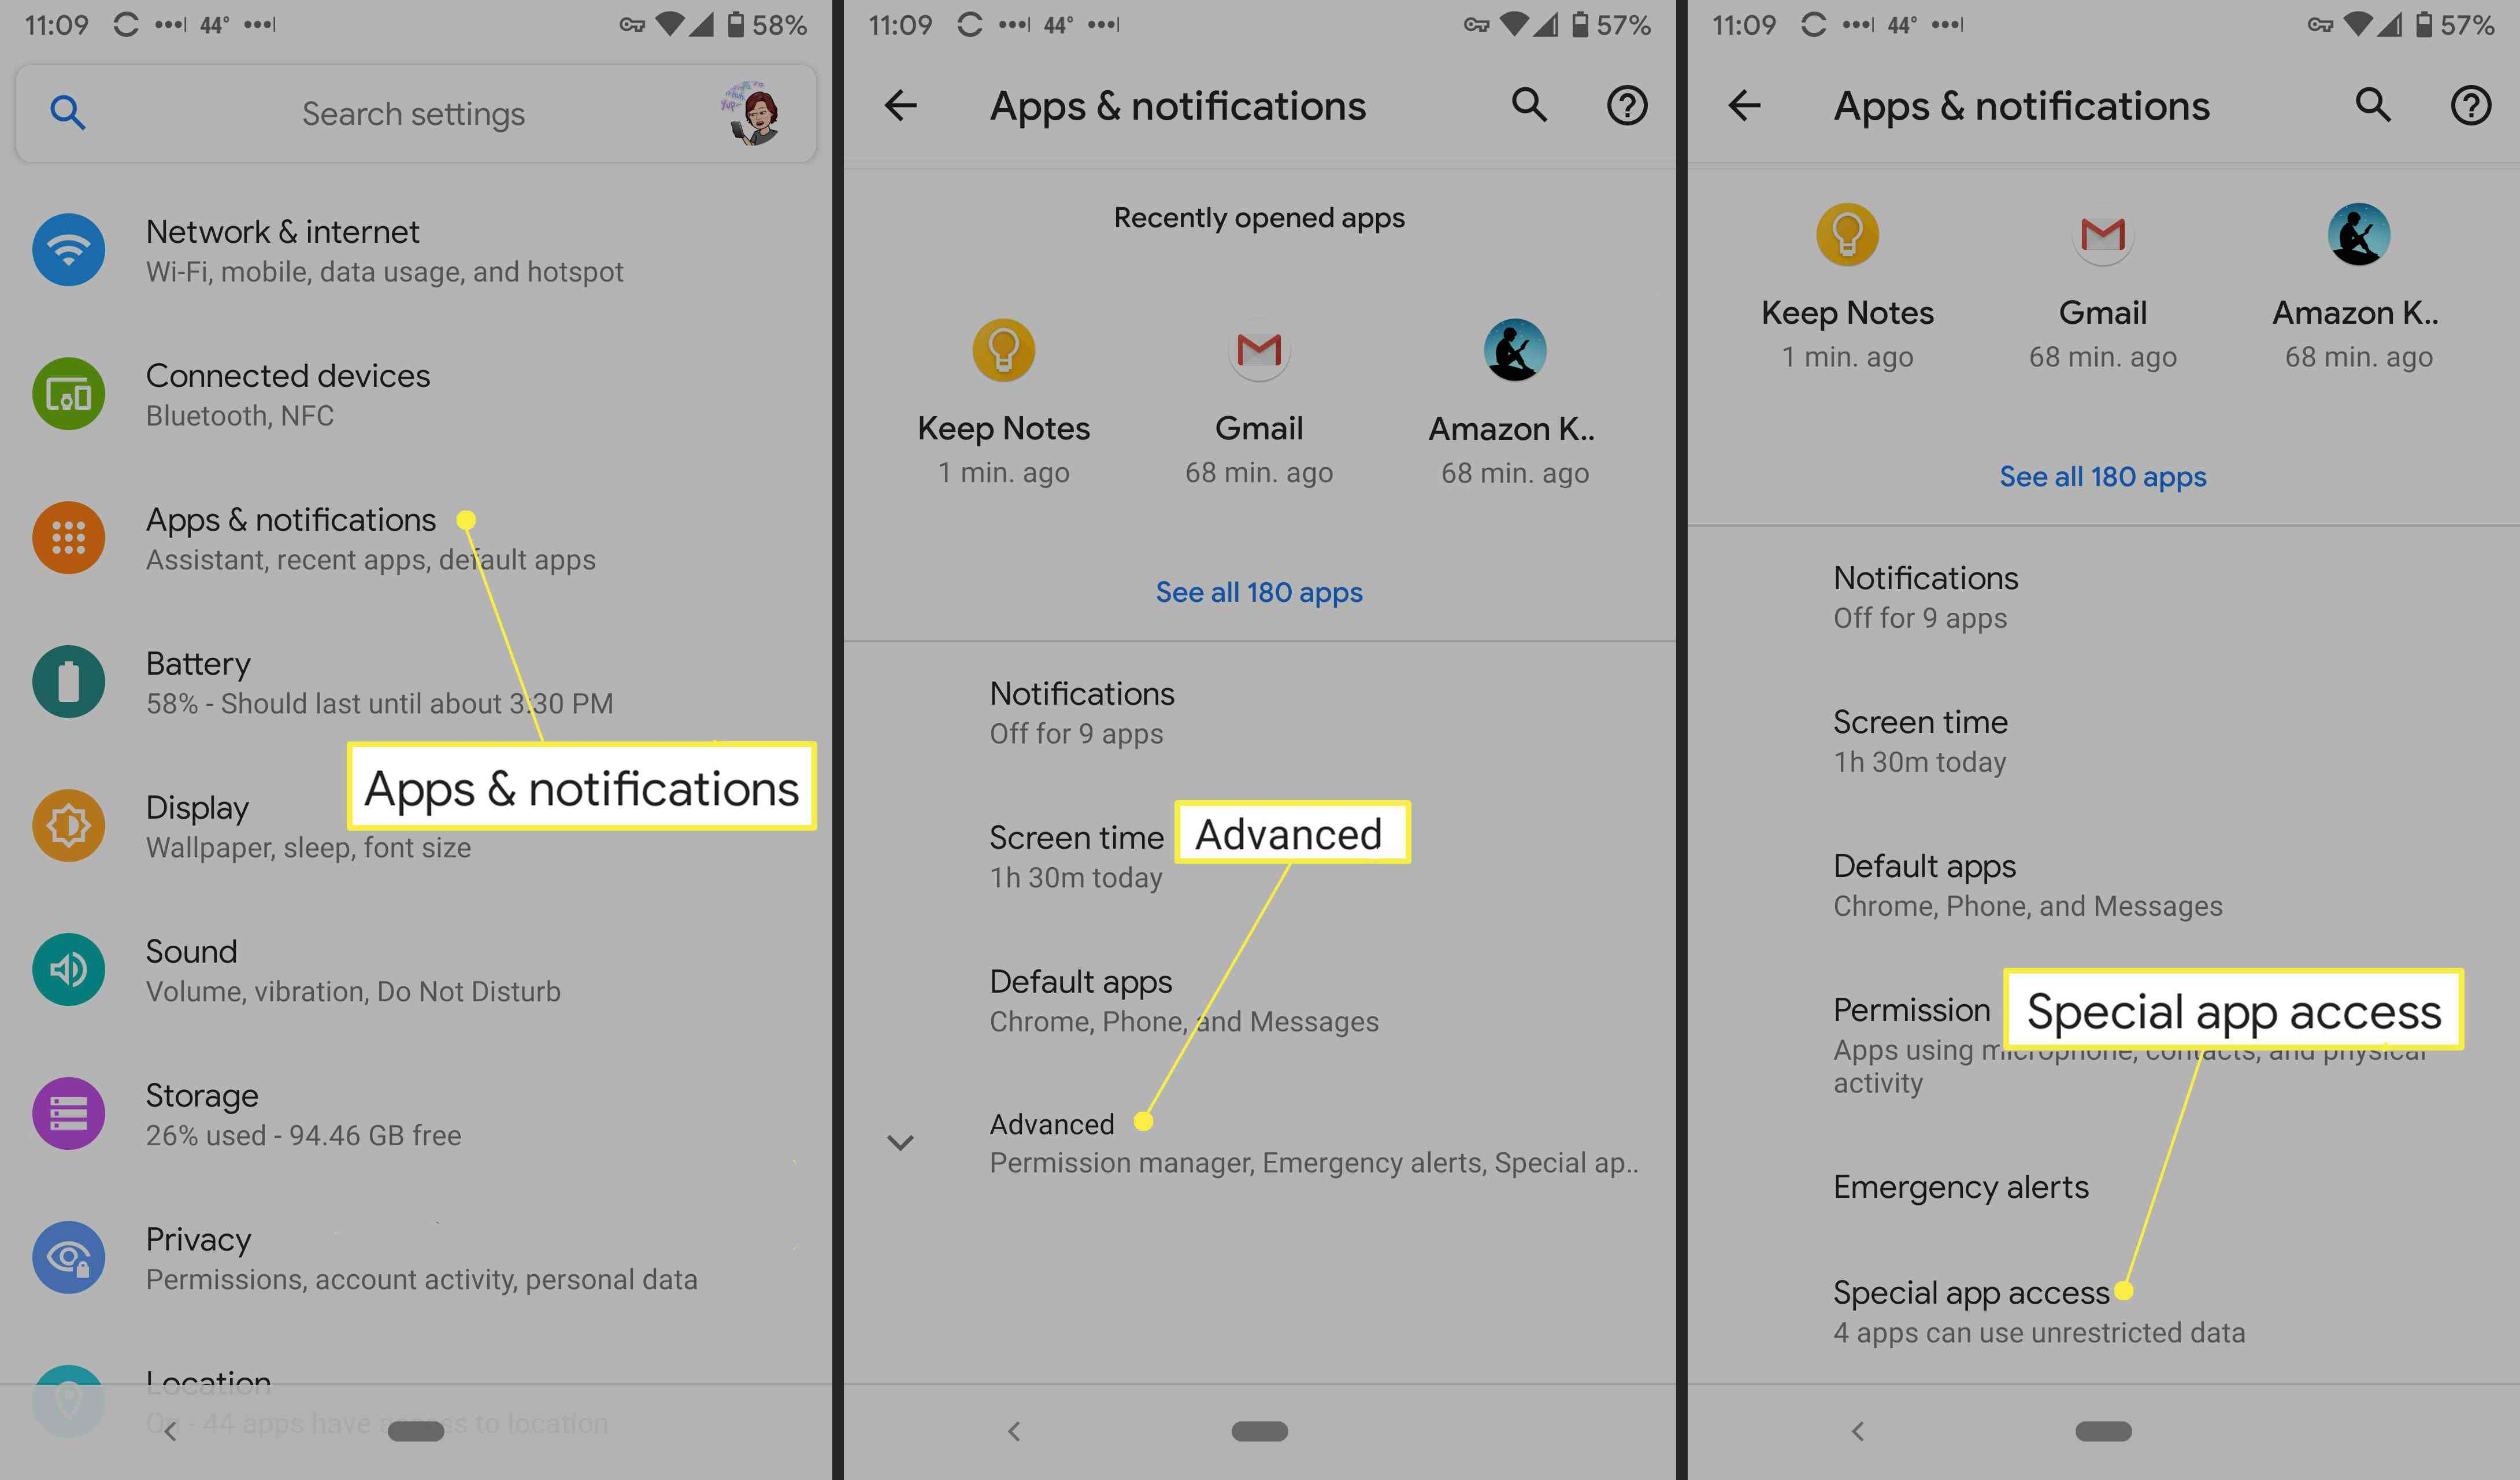 Apps & Notifications, Advanced, and Special App Access in Android settings